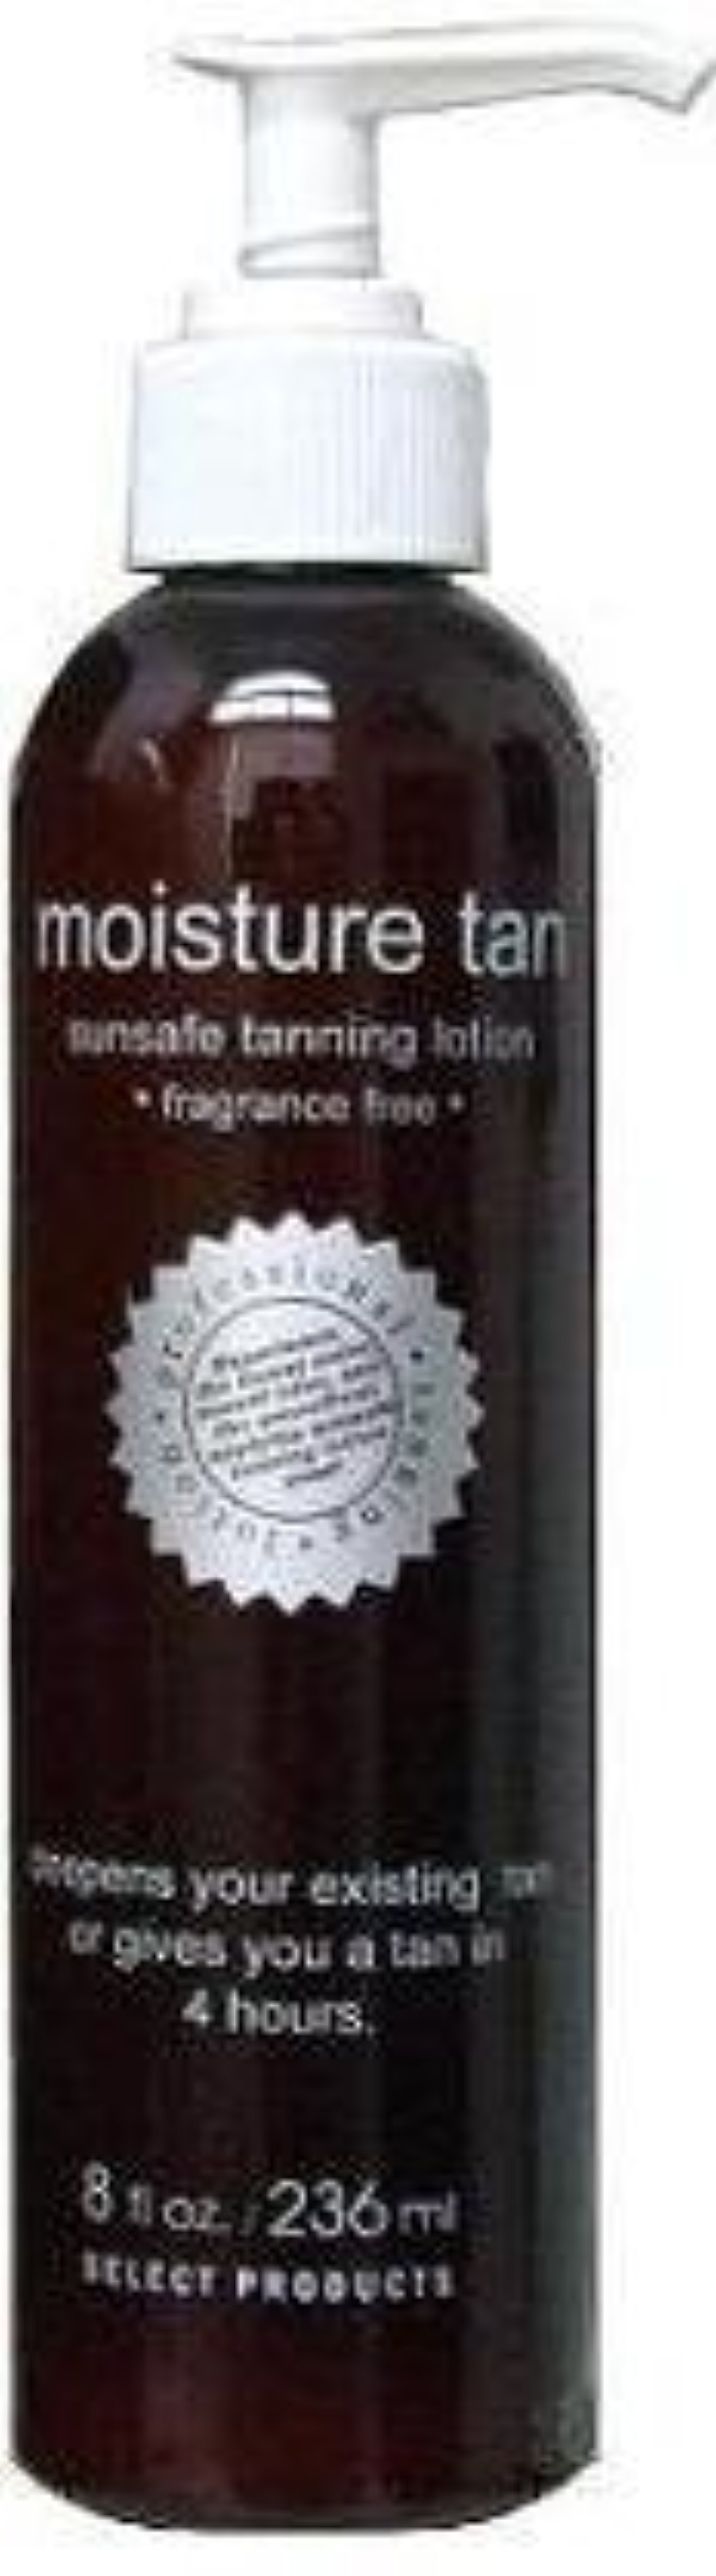 Moisture Tan Professional Self Tanner 8oz -- Voted #1 Self Tanner 2015 -- by Tanning Bay Products -- Awesome products selected by Anna Churchill